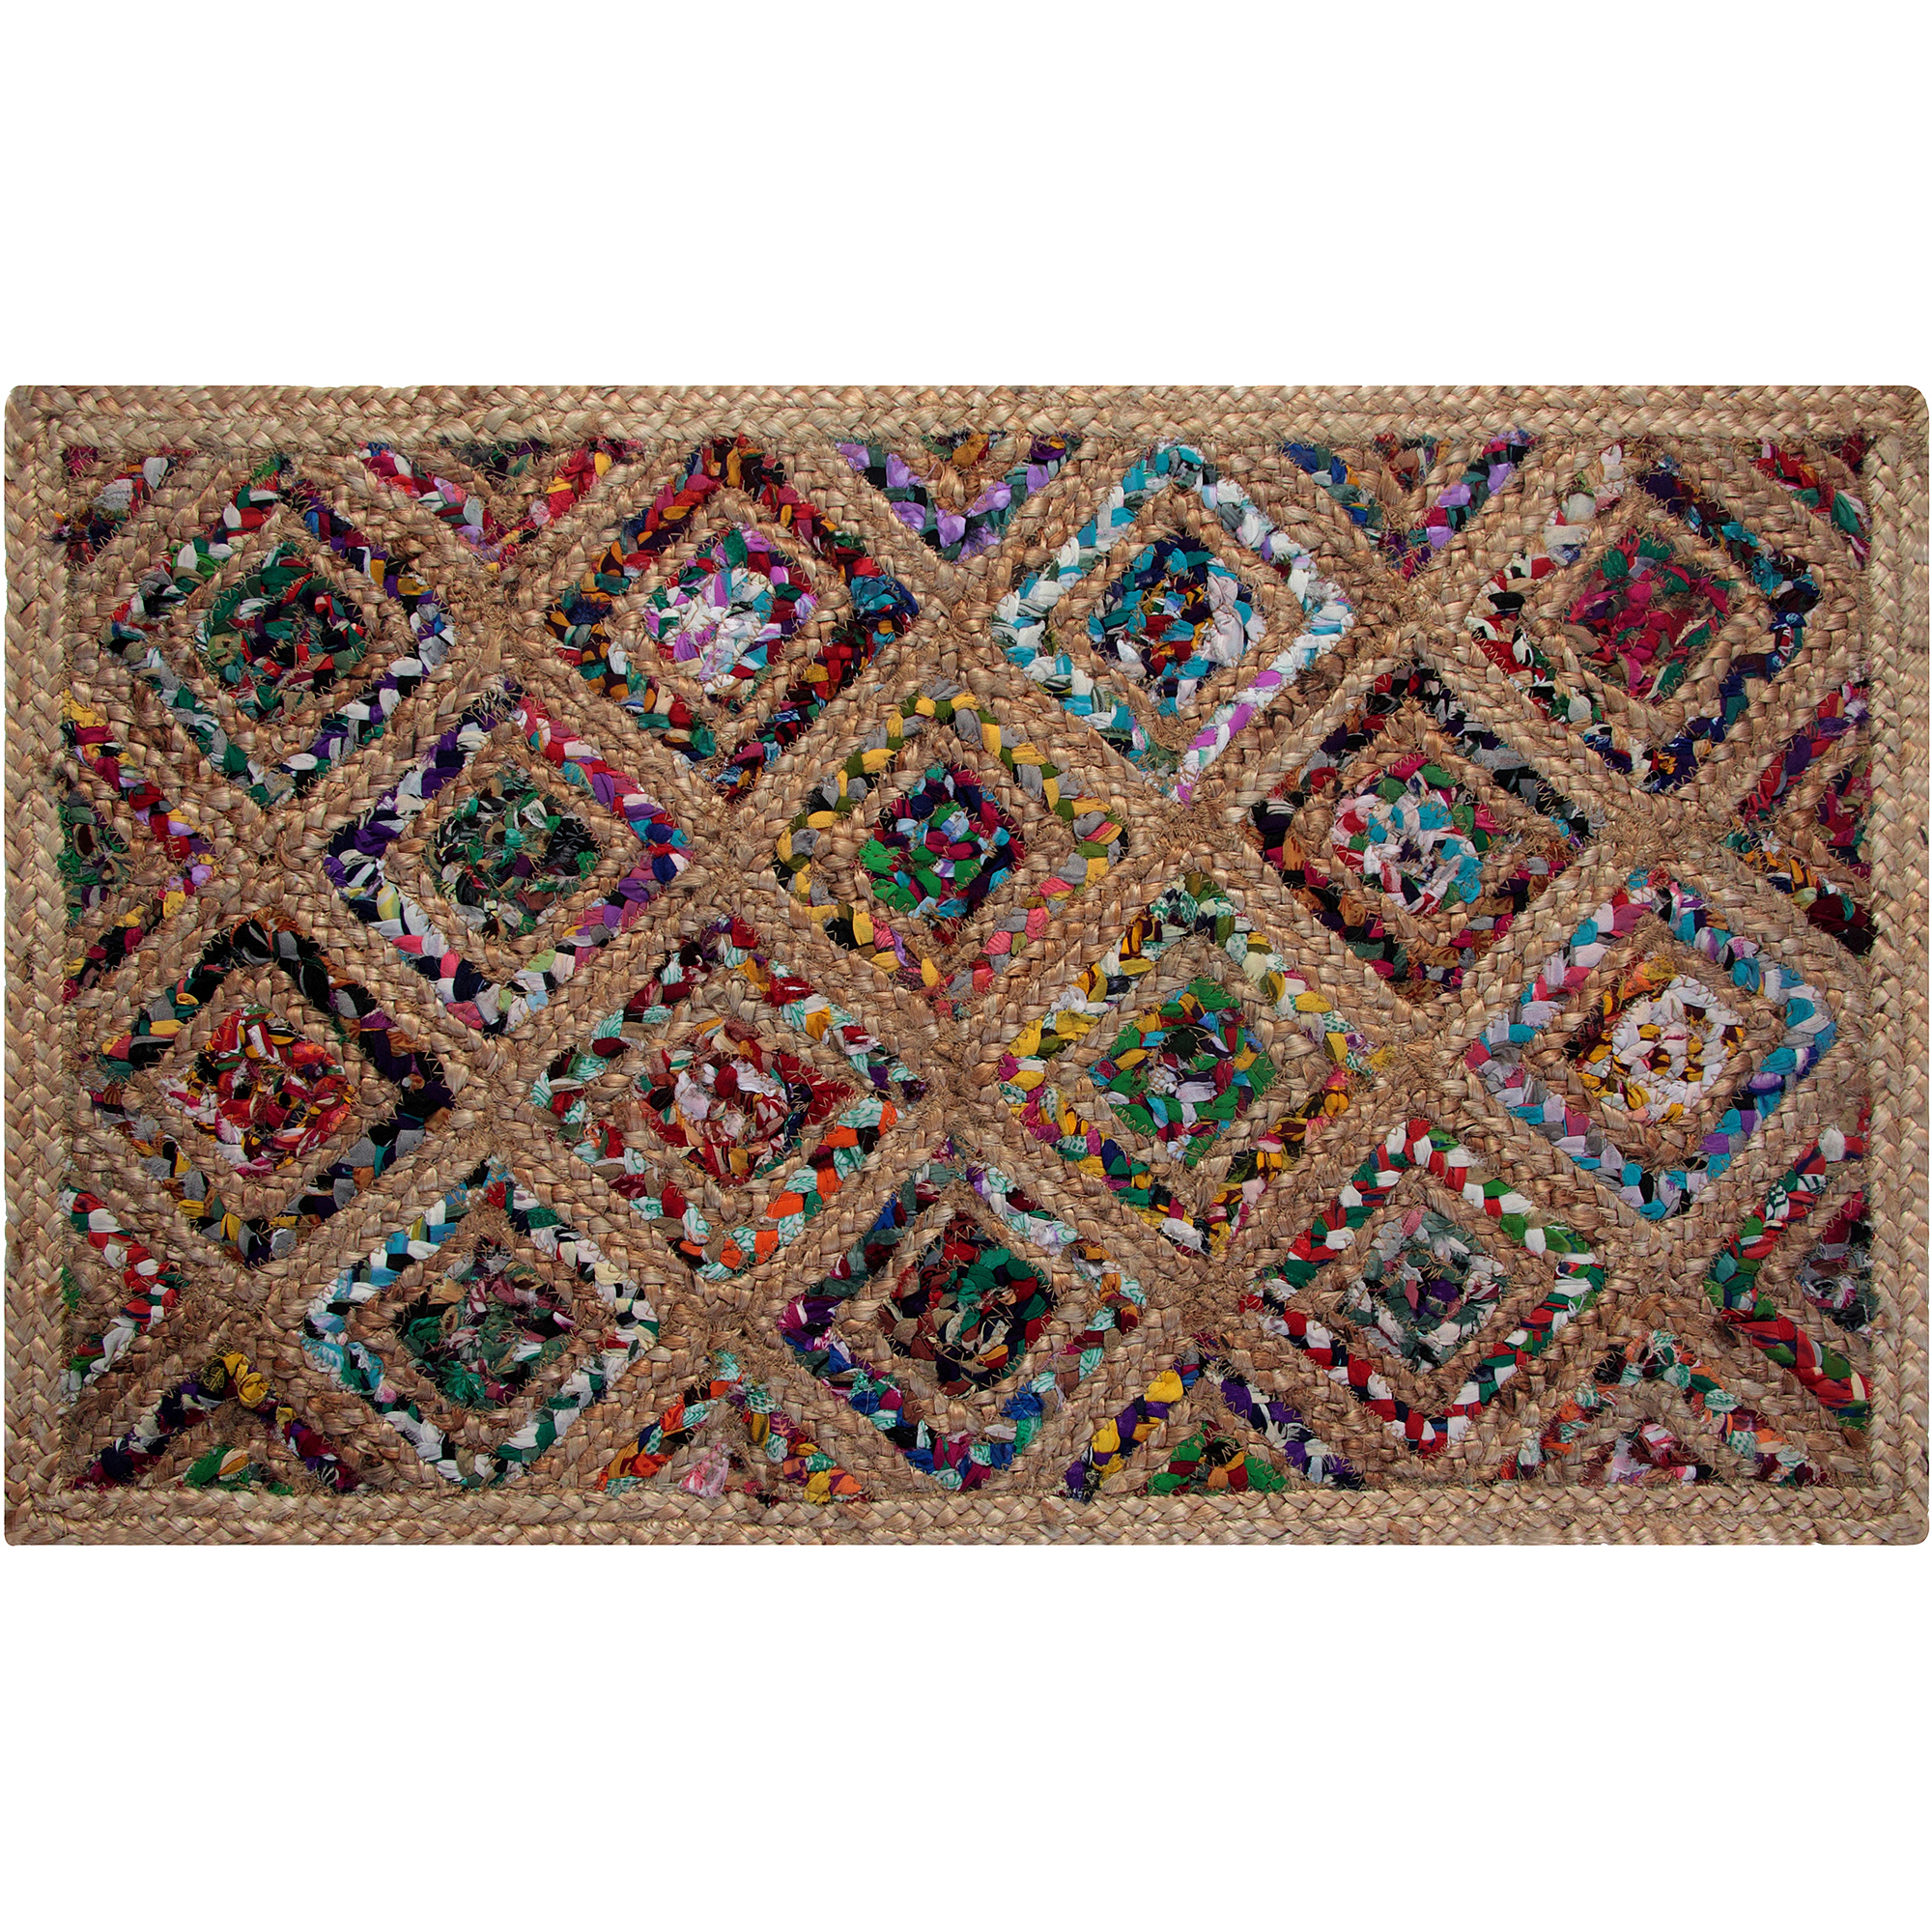 Diamond Natural Hemp and Dyed Chindi Braided Rug, Multi-Color, 3' x 5'